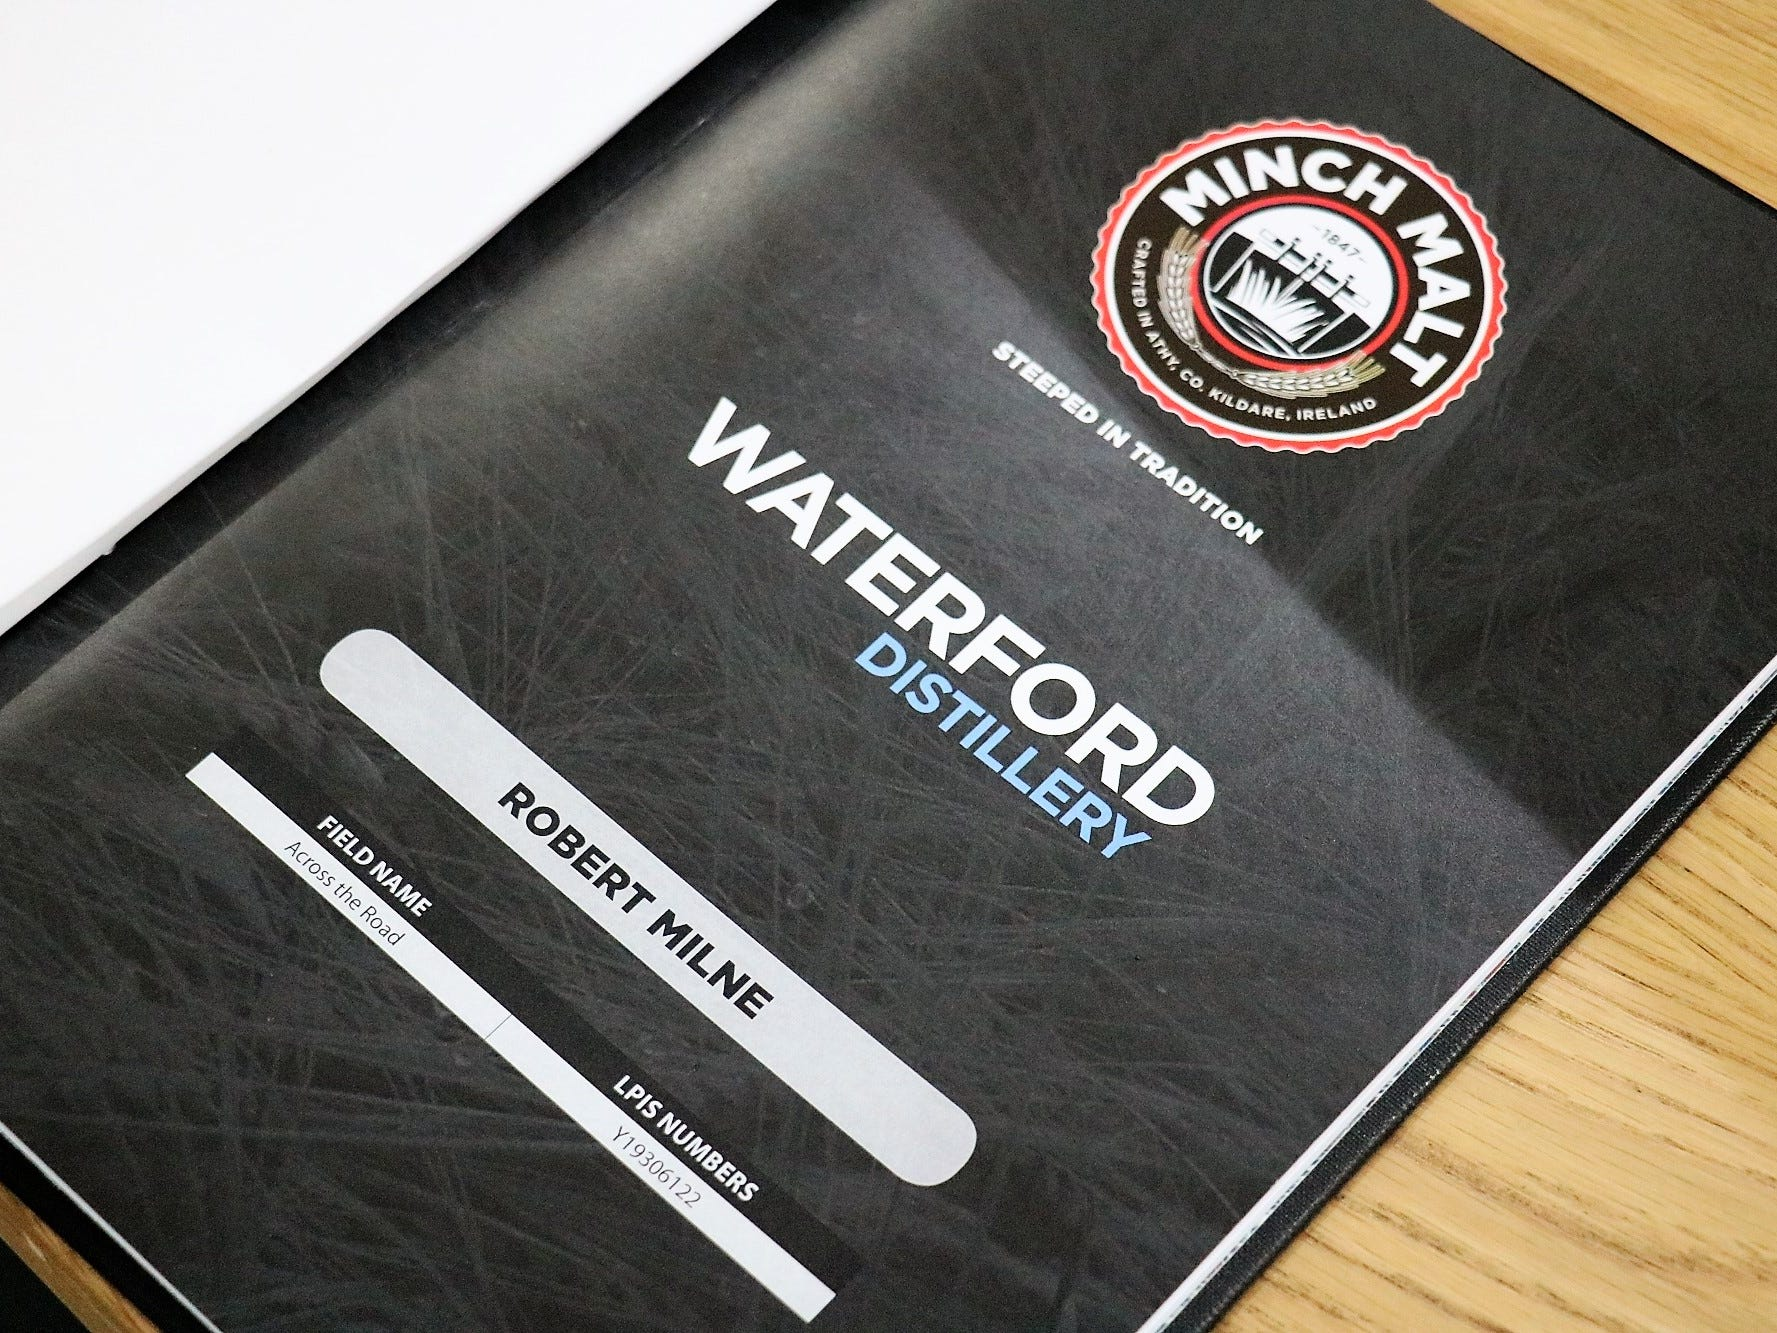 "Waterford produces a ""passport"" for each farm and production batch, in conjunction with maltster Minch Malt. It offers an enormous amount of data, including soil type and location of a given field, date of planting, how much fertilizer was used and when, barley variety, quality of the grain in terms of protein and moisture levels, where and when the grain was stored in the warehouse, and much more. Similar amounts of data are kept for each aspect of fermentation, distillation and maturation."